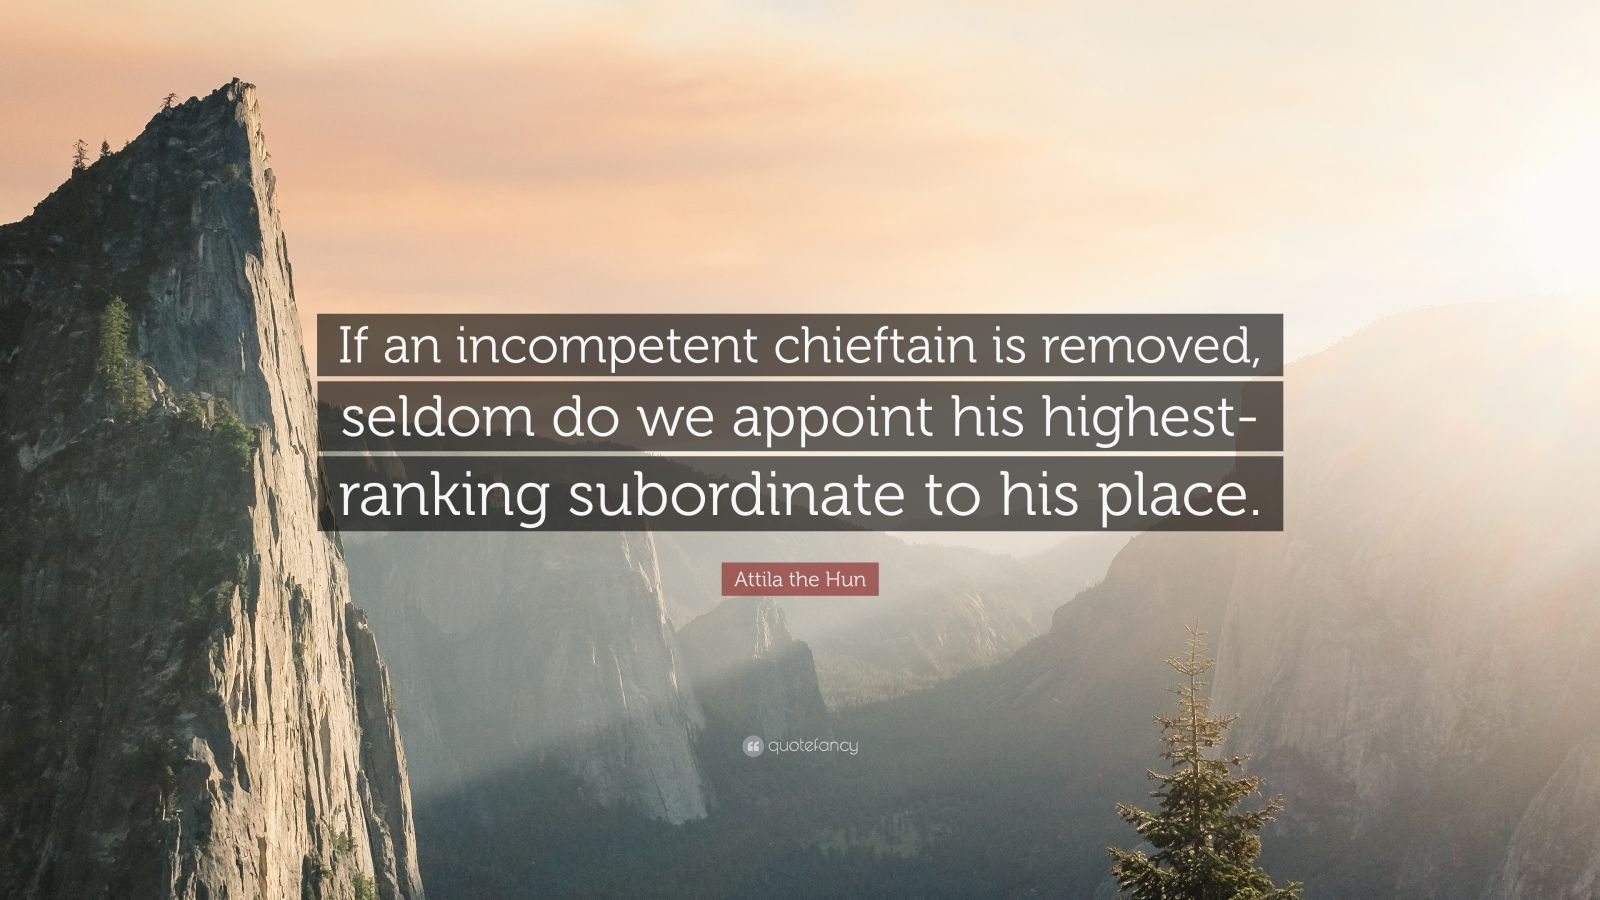 """Attila the Hun Quote: """"If an incompetent chieftain is removed, seldom do we appoint his highest-ranking subordinate to his place."""""""